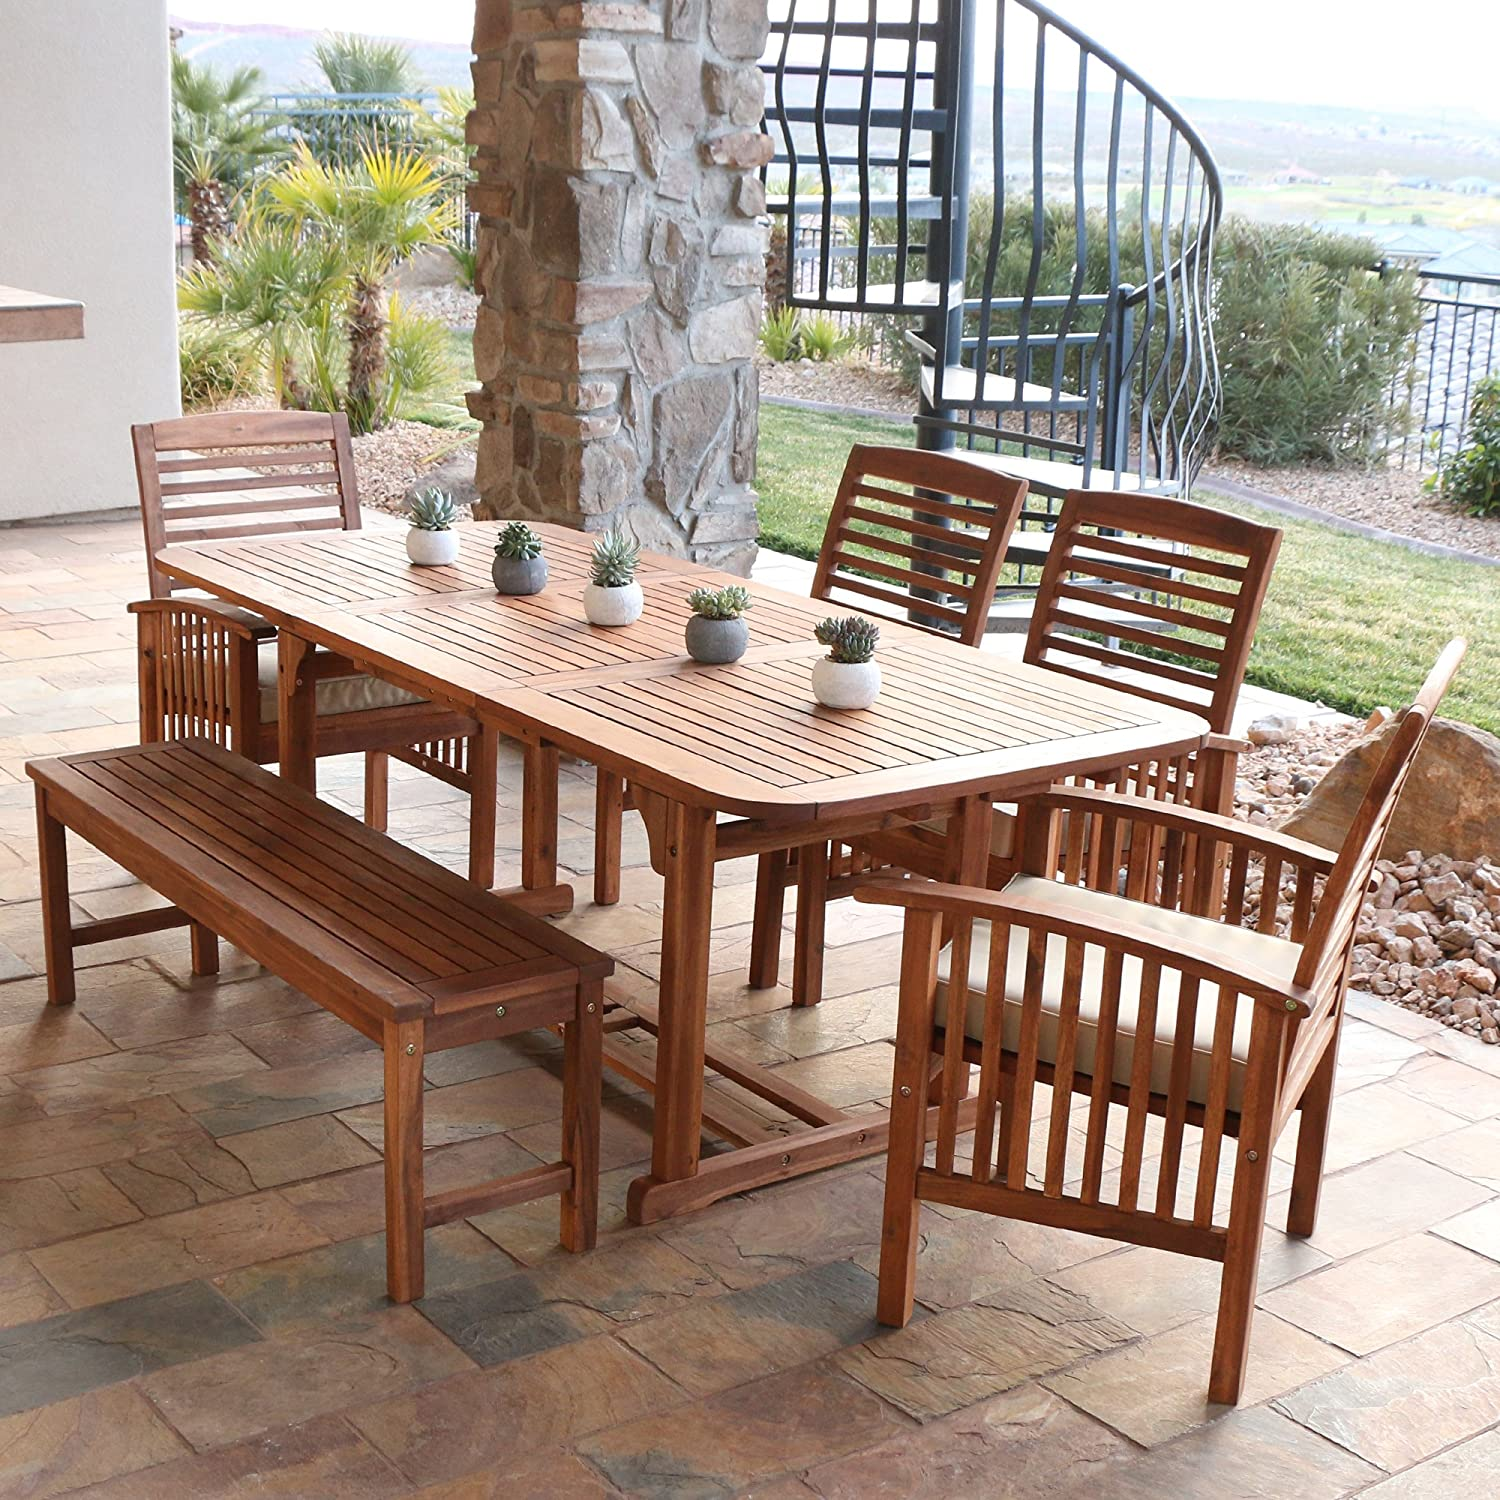 Amazon.com: WE Furniture Solid Acacia Wood 6-Piece Patio Dining Set ...